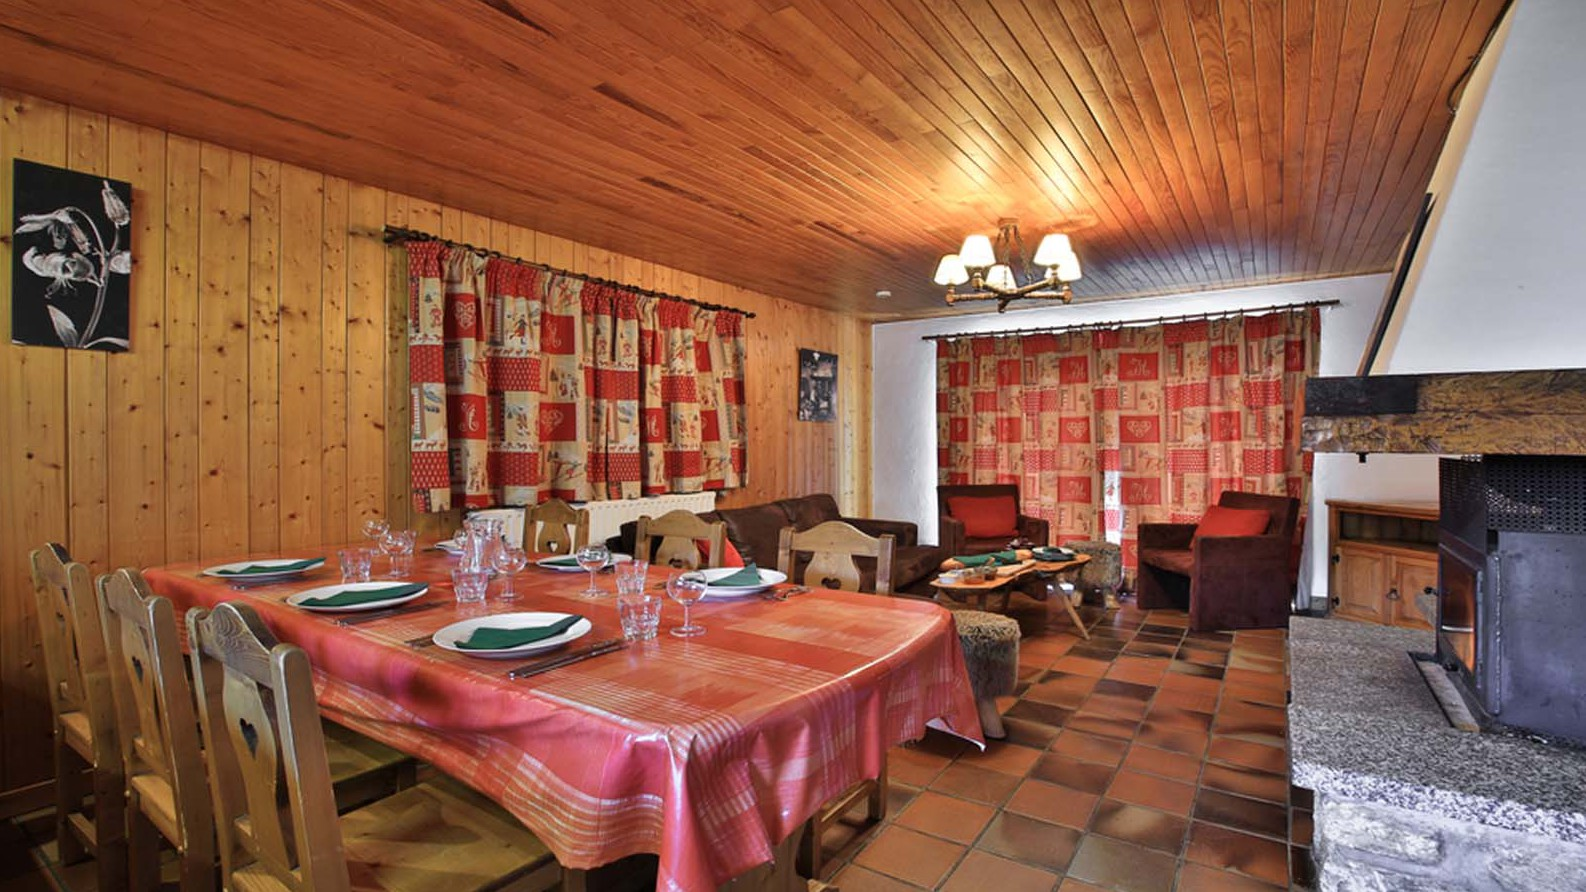 Dining , Chalet Andre - ski chalet in Meribel, France